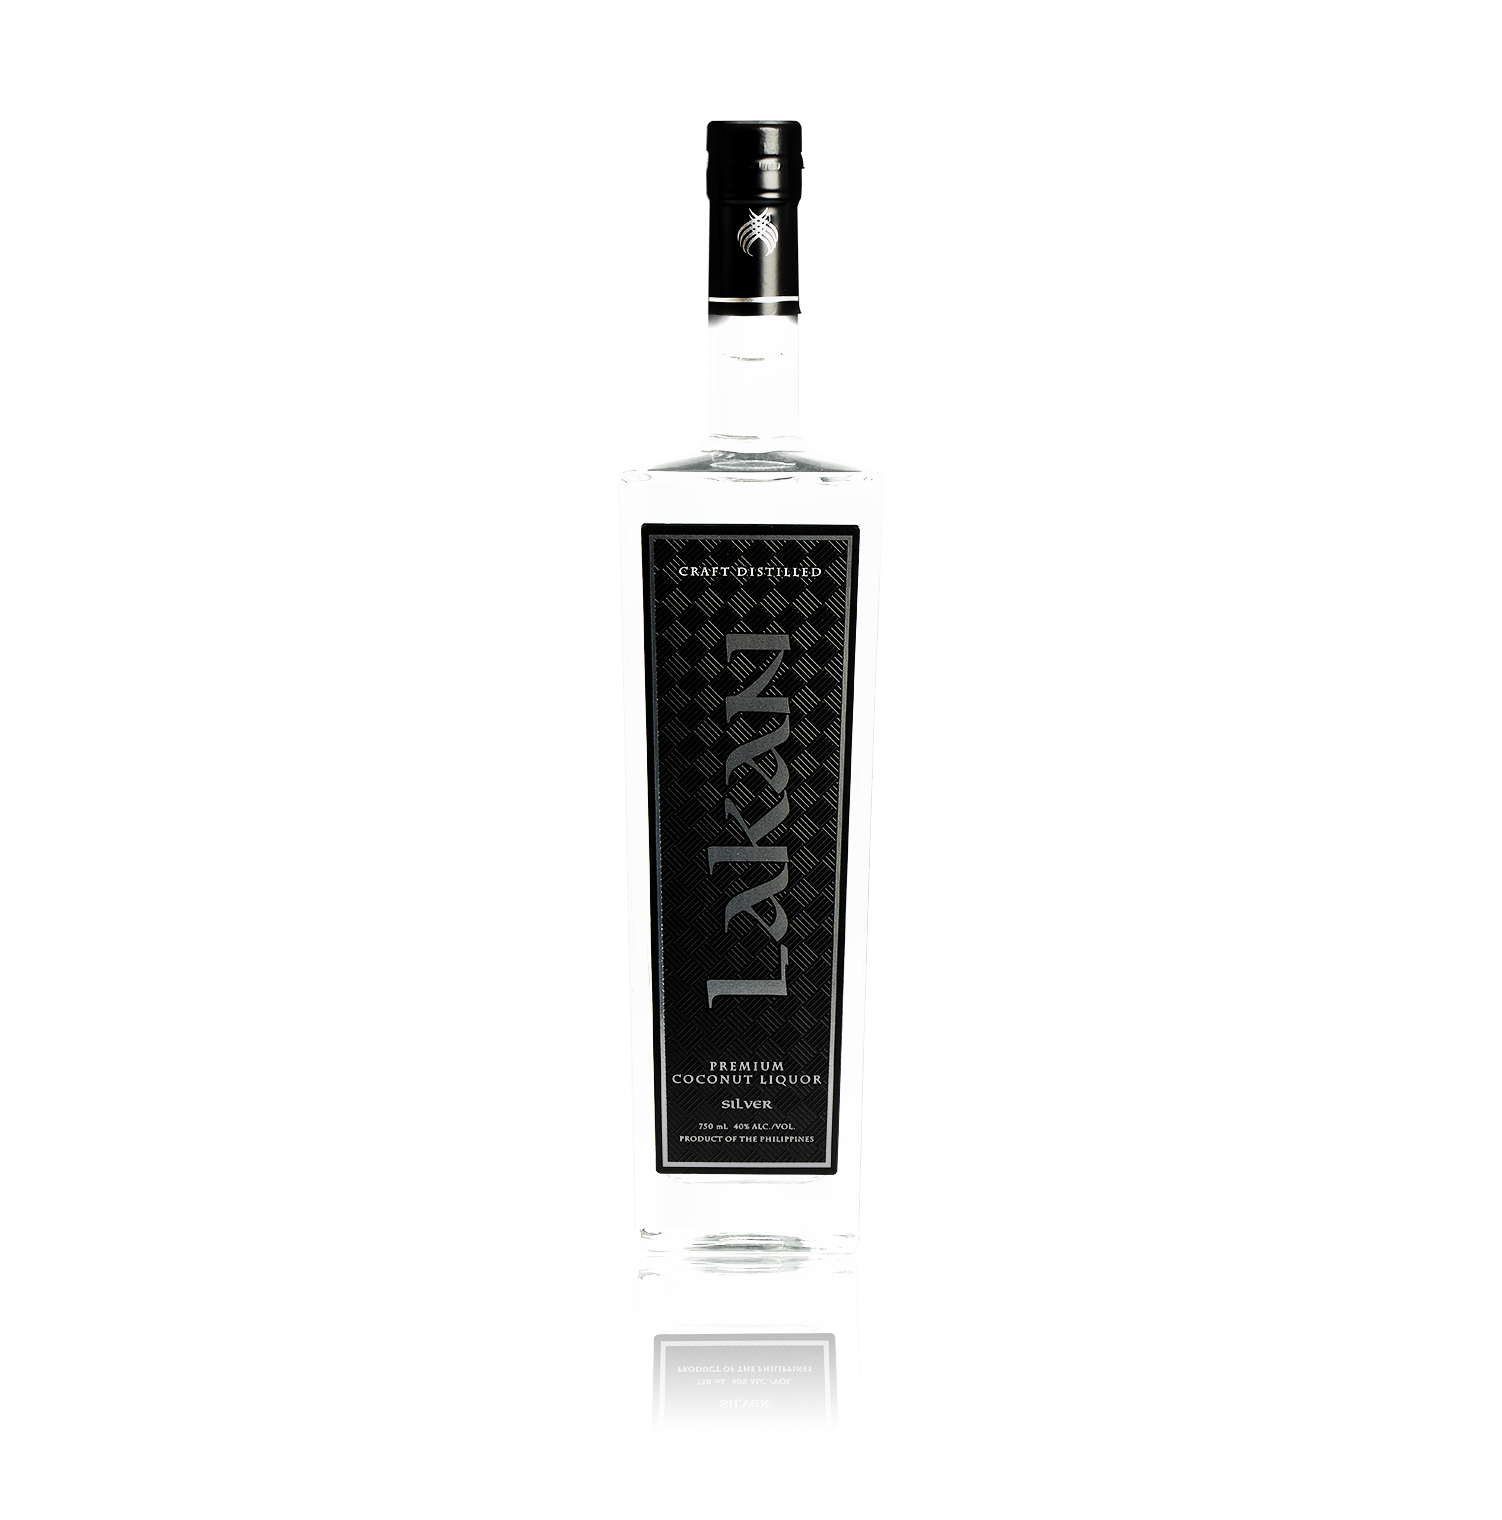 Lakan Silver is an authentic coconut liquor craft distilled in small batches by our Master Artisan. This unique liquor has hints of a jammy fruit and vanilla flavor with a pleasingly smooth finish.  Celebrate and taste the difference with a bottle of Lakan Premium Lambanog.  40 ABV 750ml 4x pot distilled